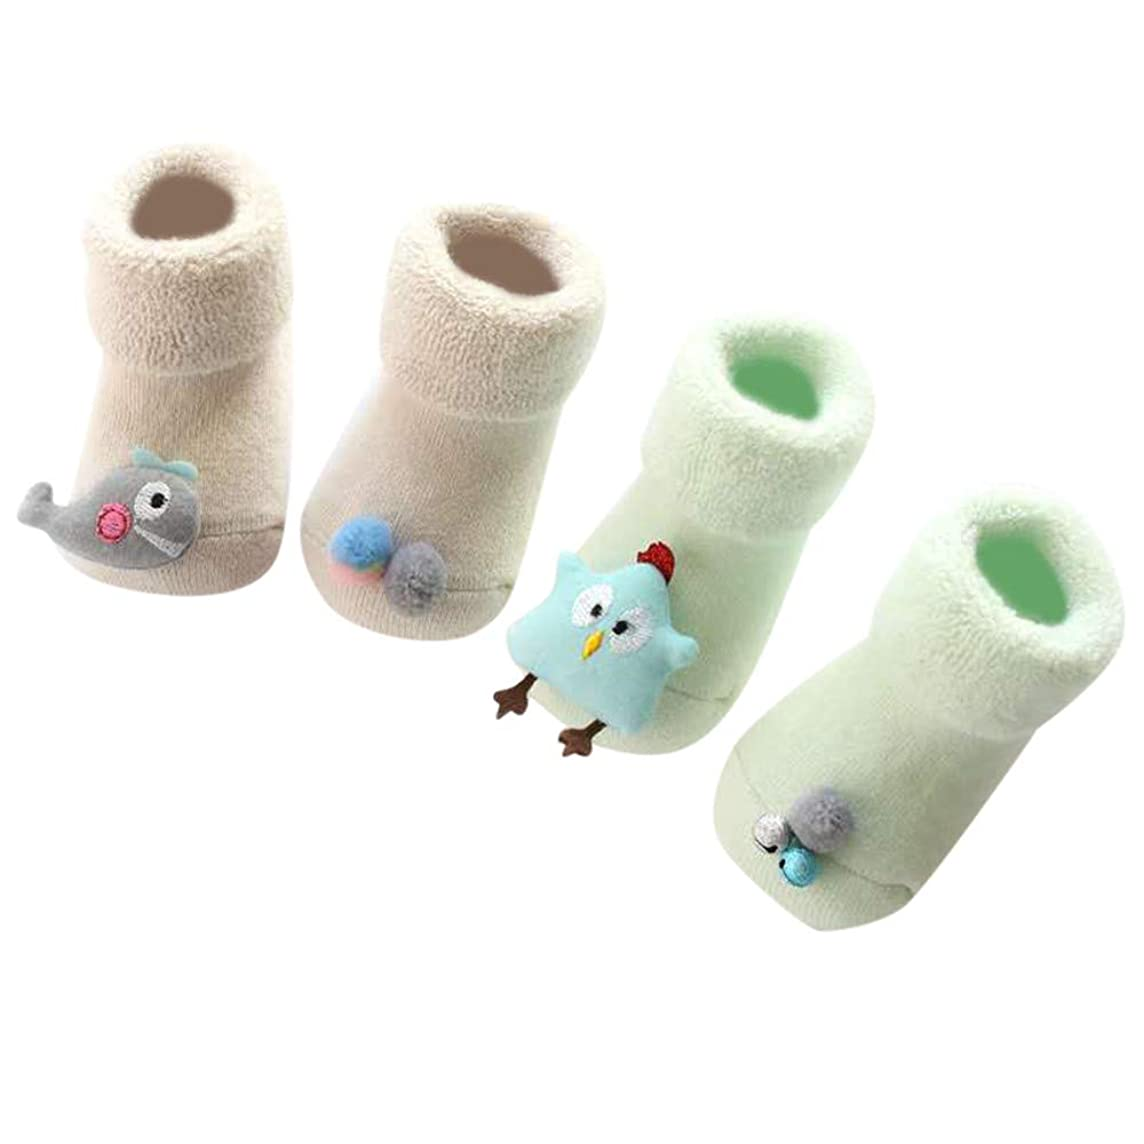 2 Pairs Baby Boy Girls Toddlers Moccasins Cute Animal Non-Skid Indoor Warm Slipper Shoes Baby Socks